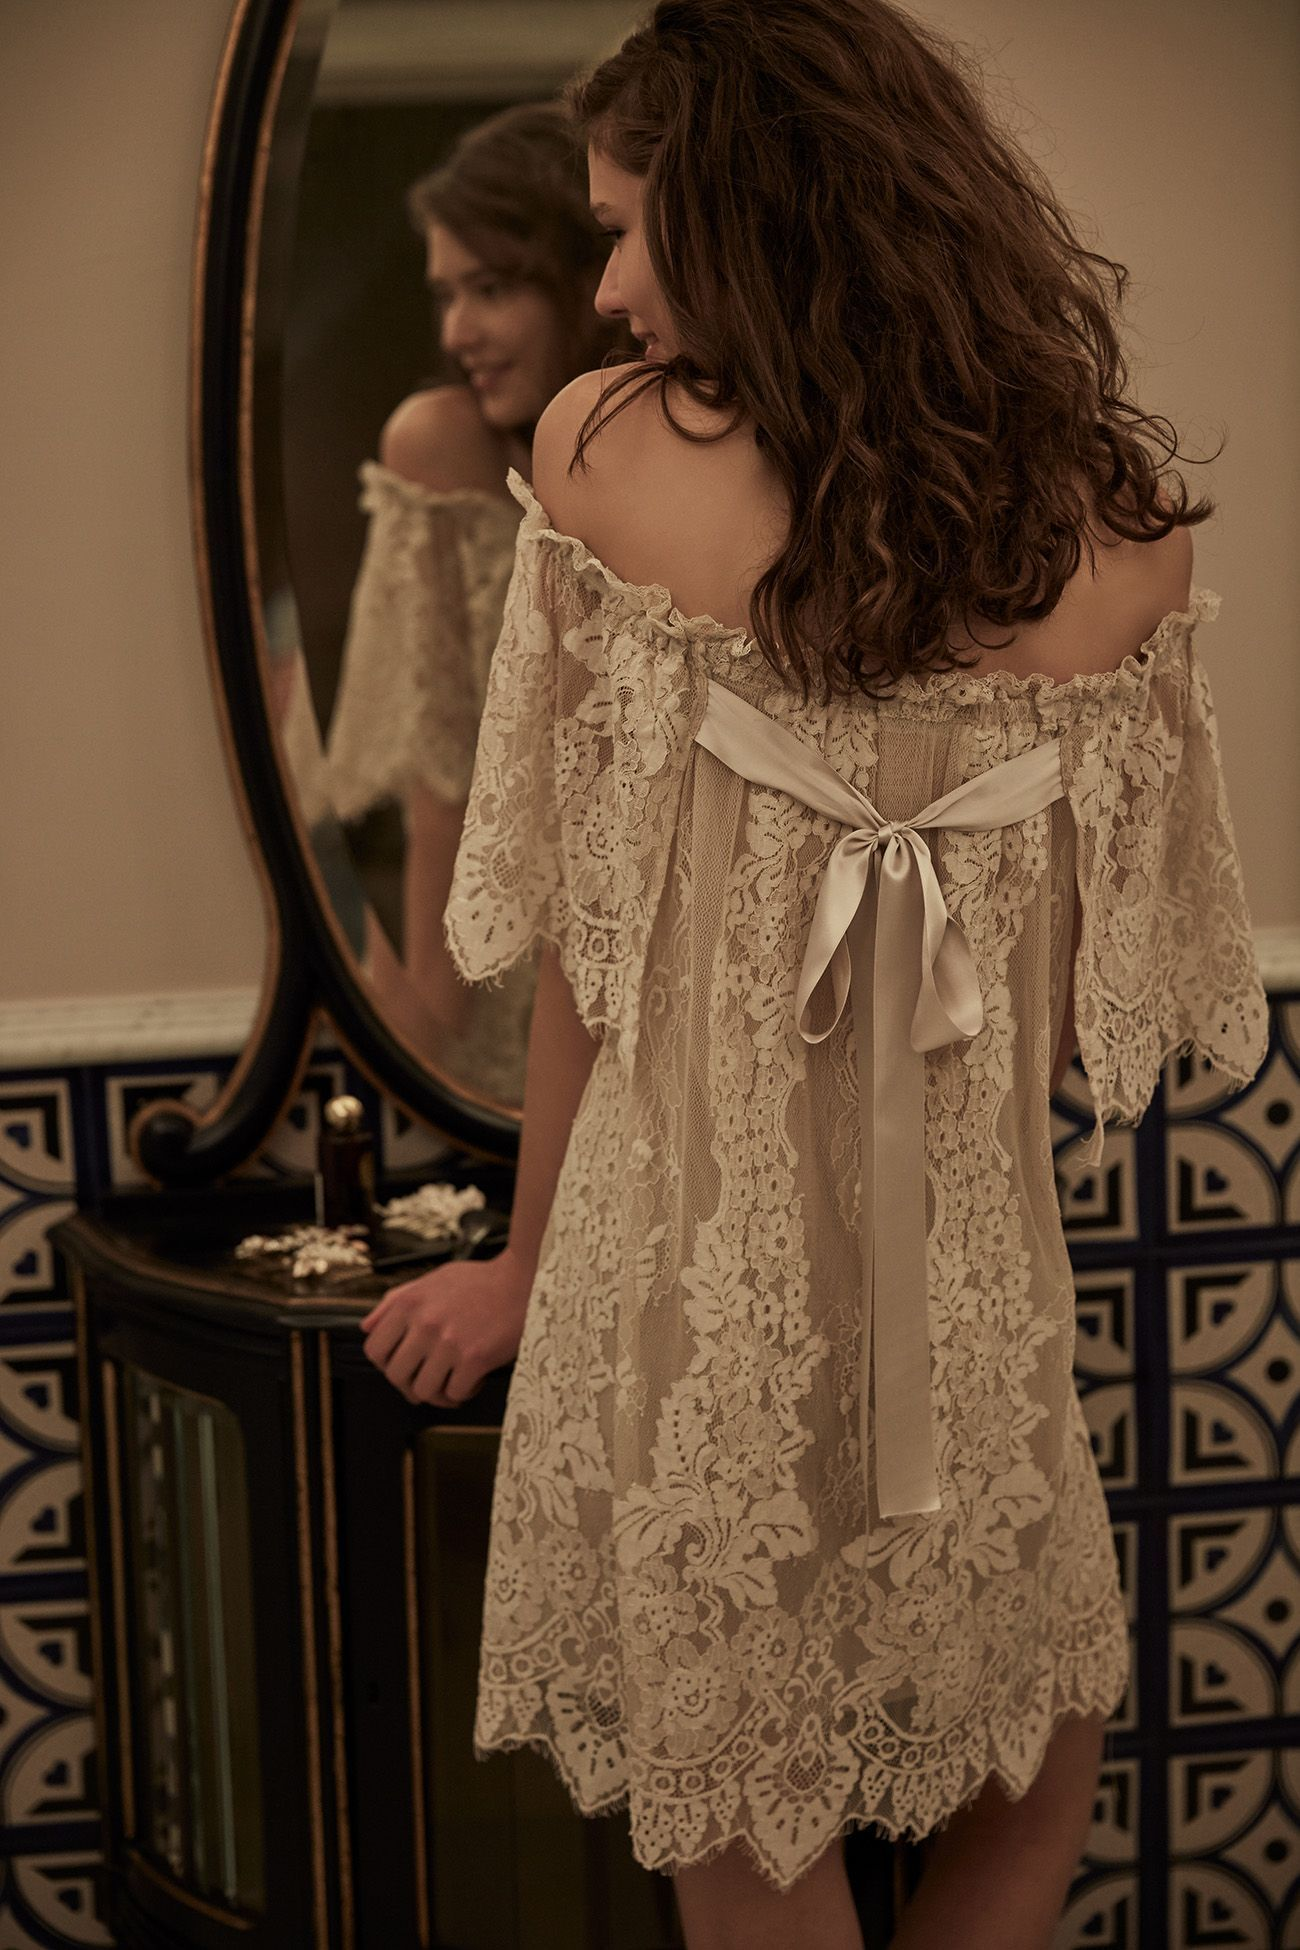 Undergarments for lace wedding dress  The Magic of Wedding Themes  Past Life  Pinterest  Lace wedding